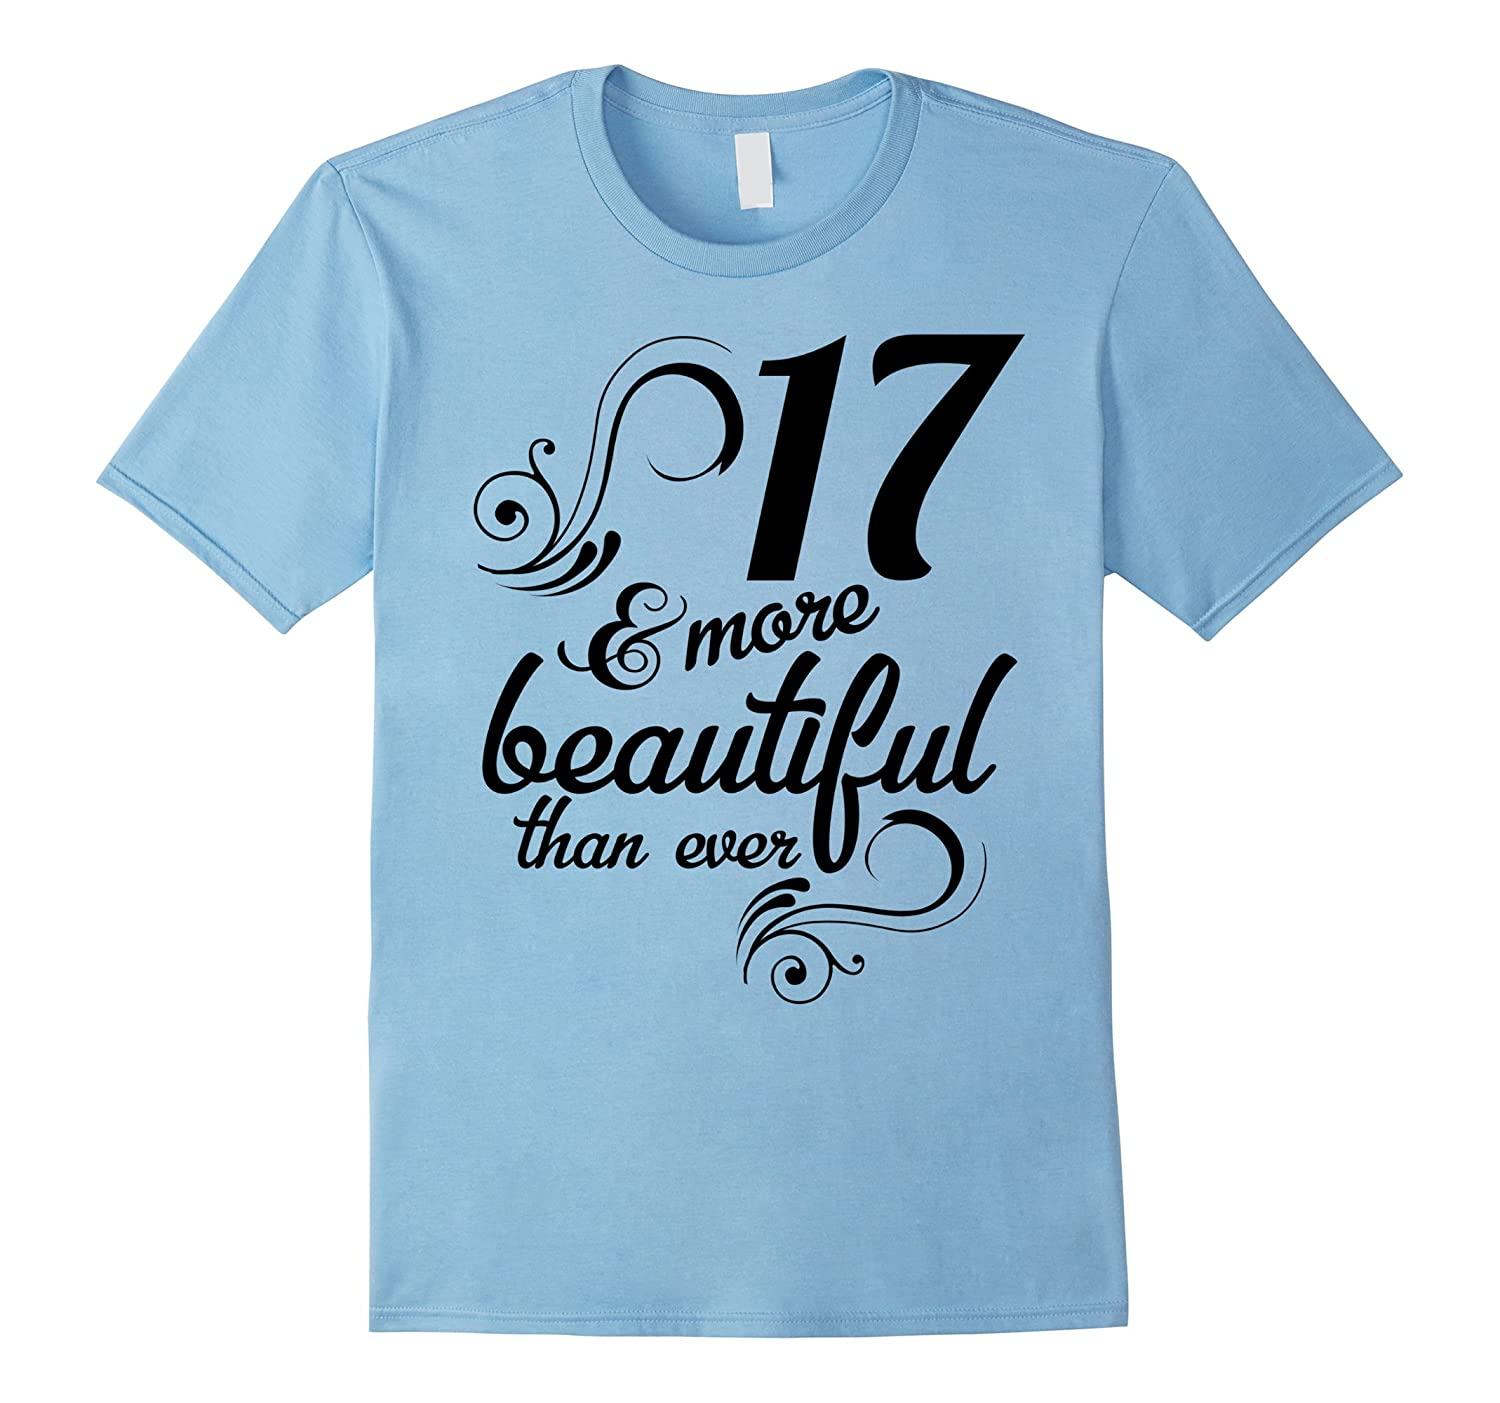 17 and more beautiful than ever Funny 17th Birthday Tshirt-TH